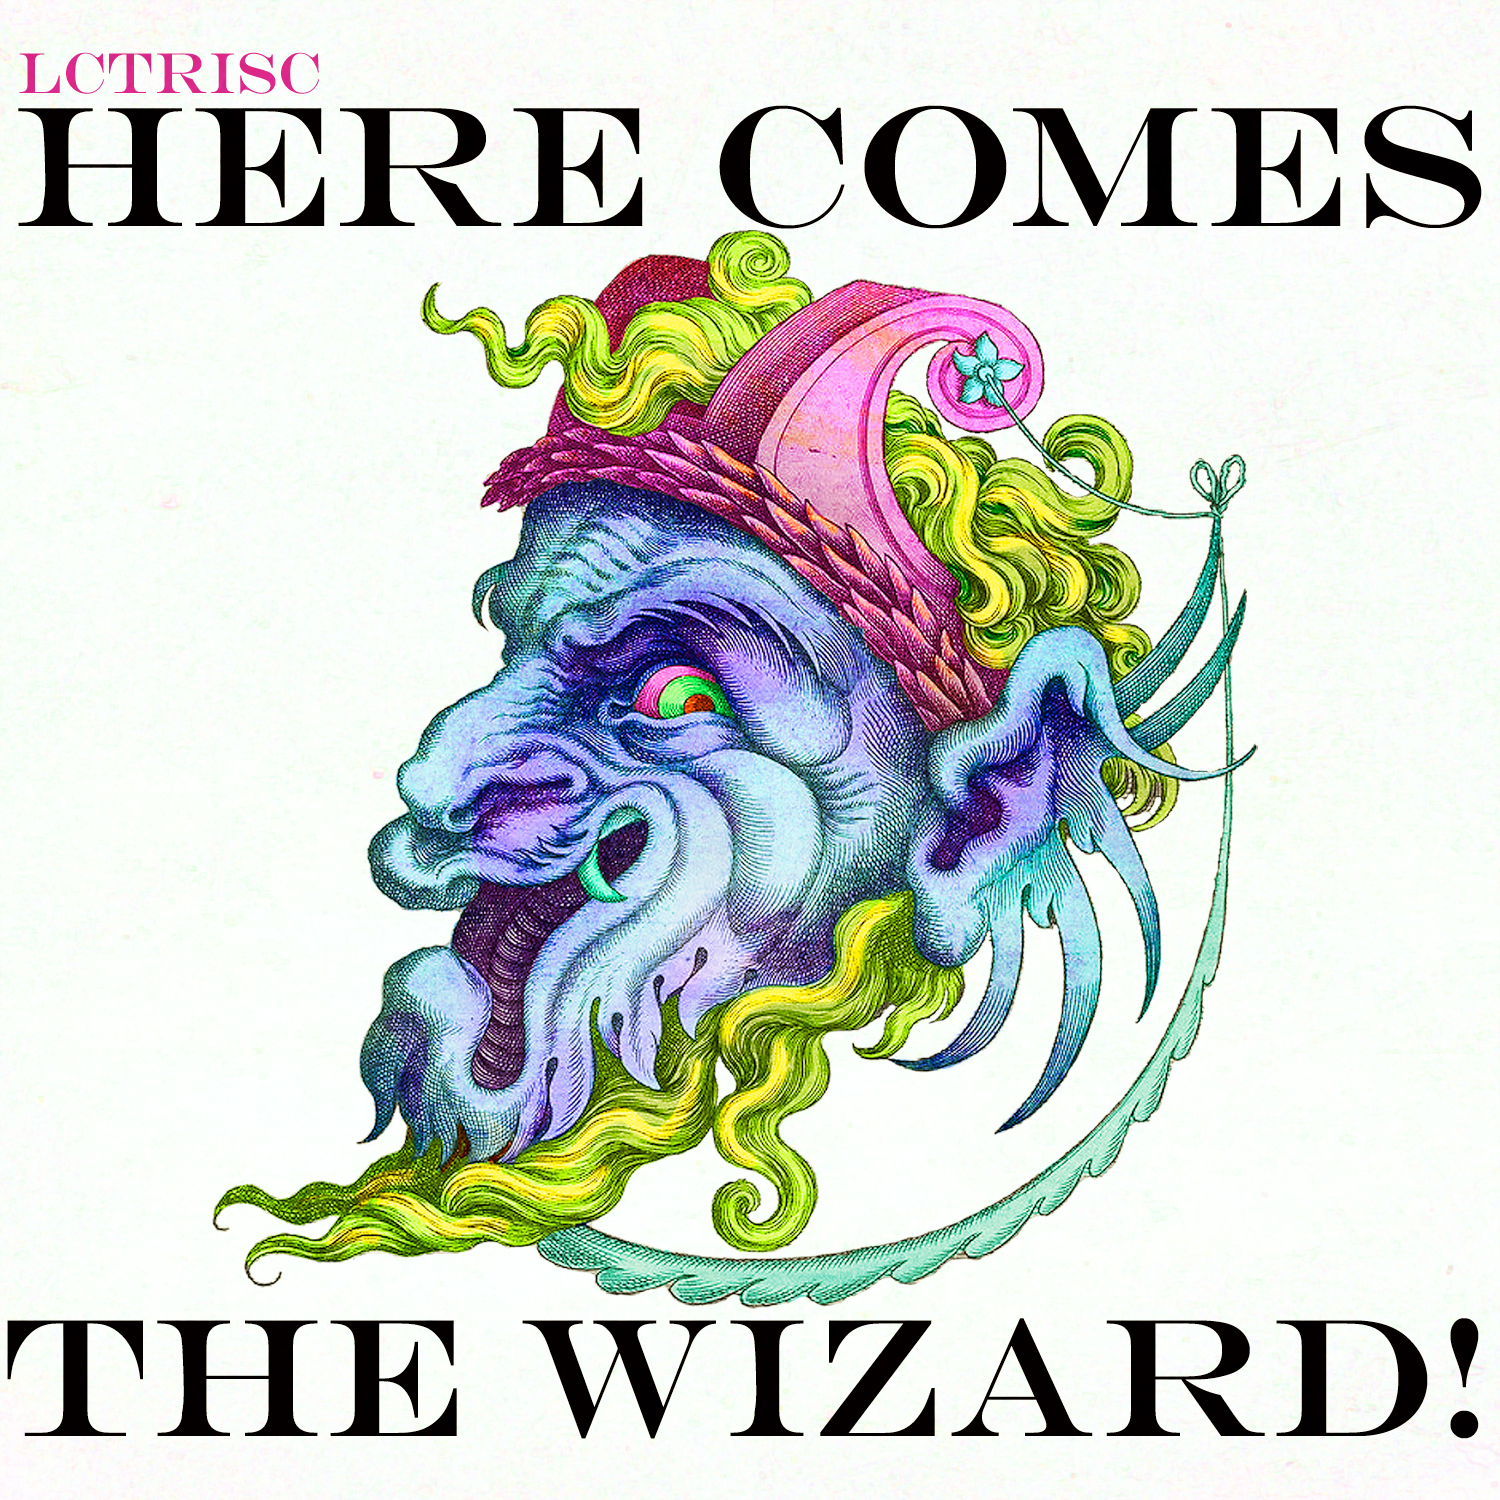 lctrisc_here_comes_the_wizard_single_digital_cover_1500x1500_72dpi